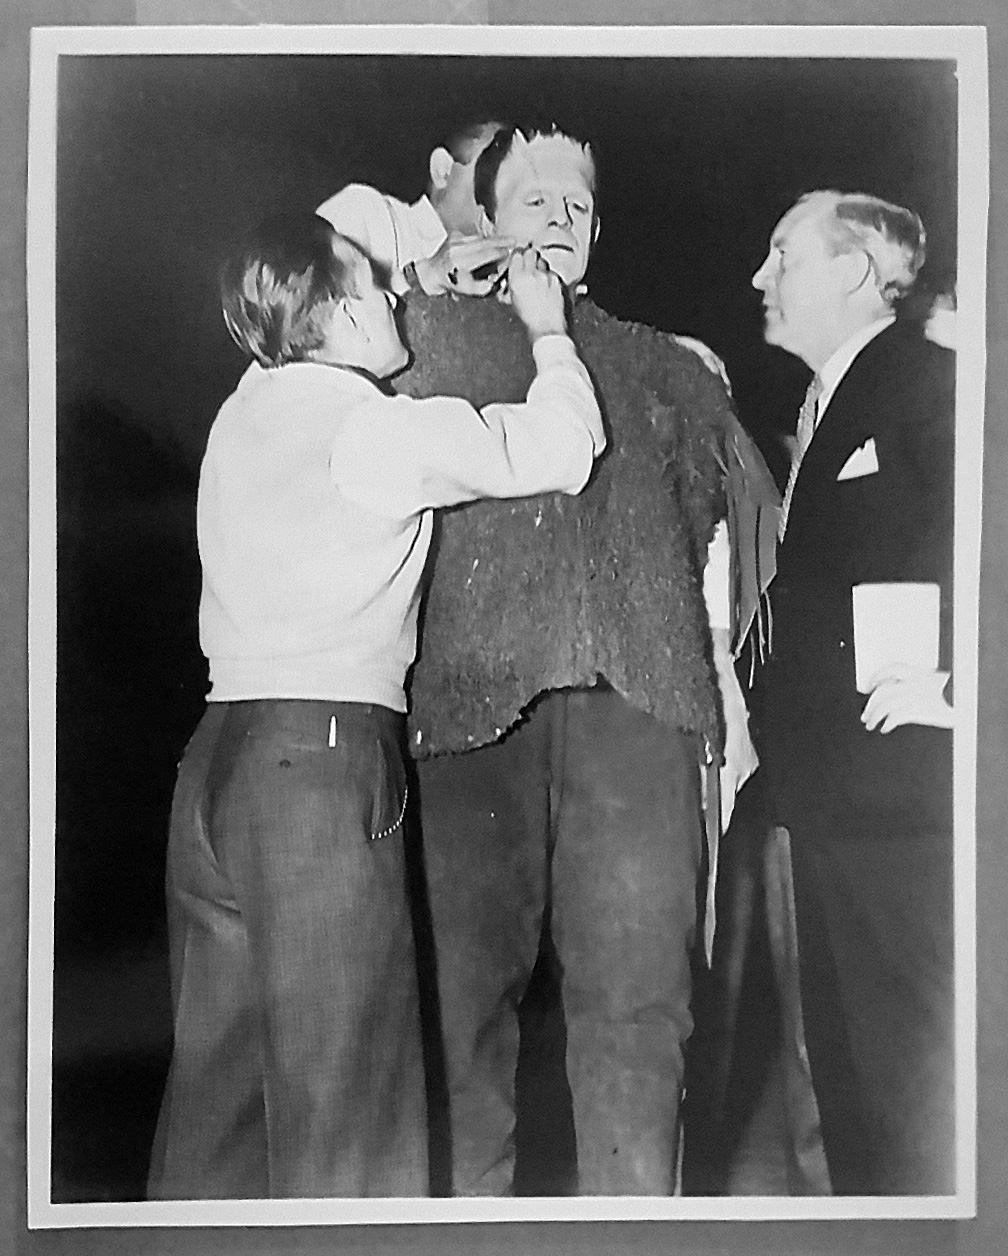 SON OF FRANKENSTEIN (1939) 8x10 Original File Photo 16